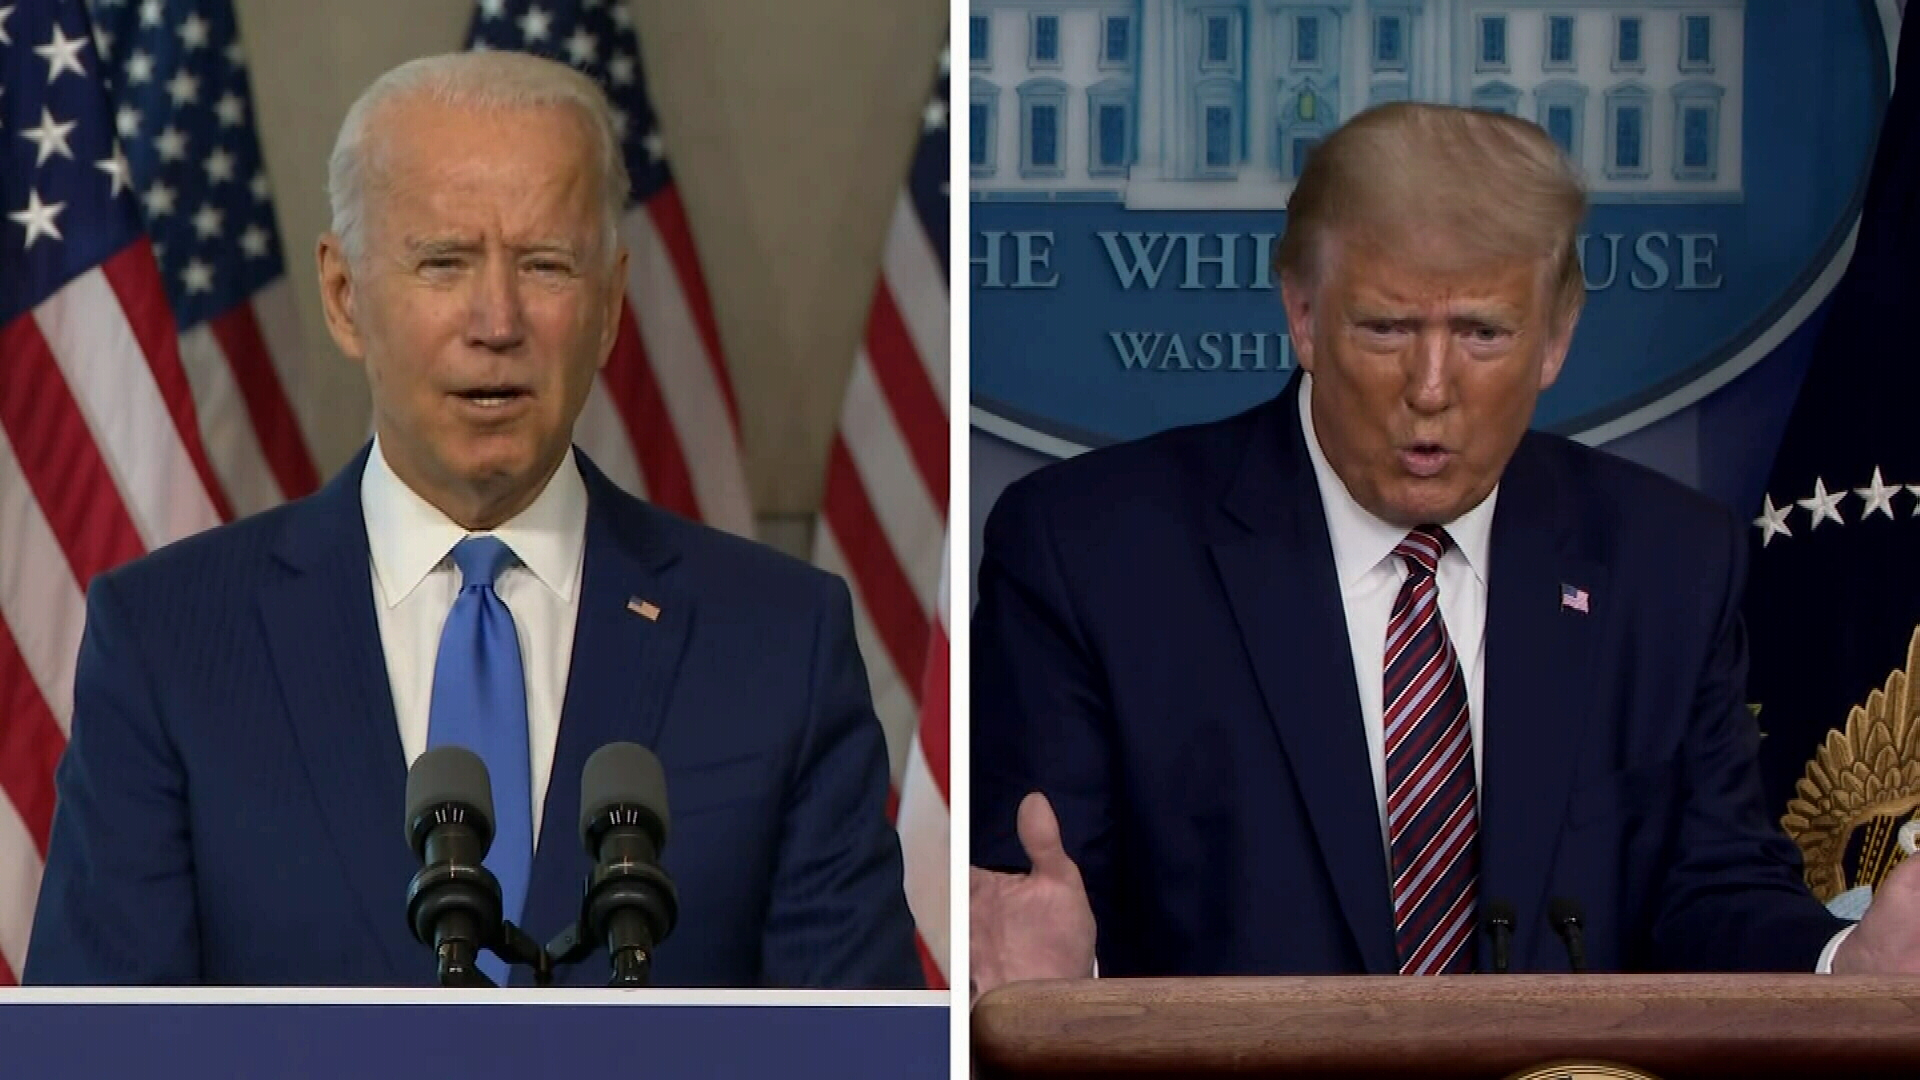 Trump and Biden gear up for competing TV debates